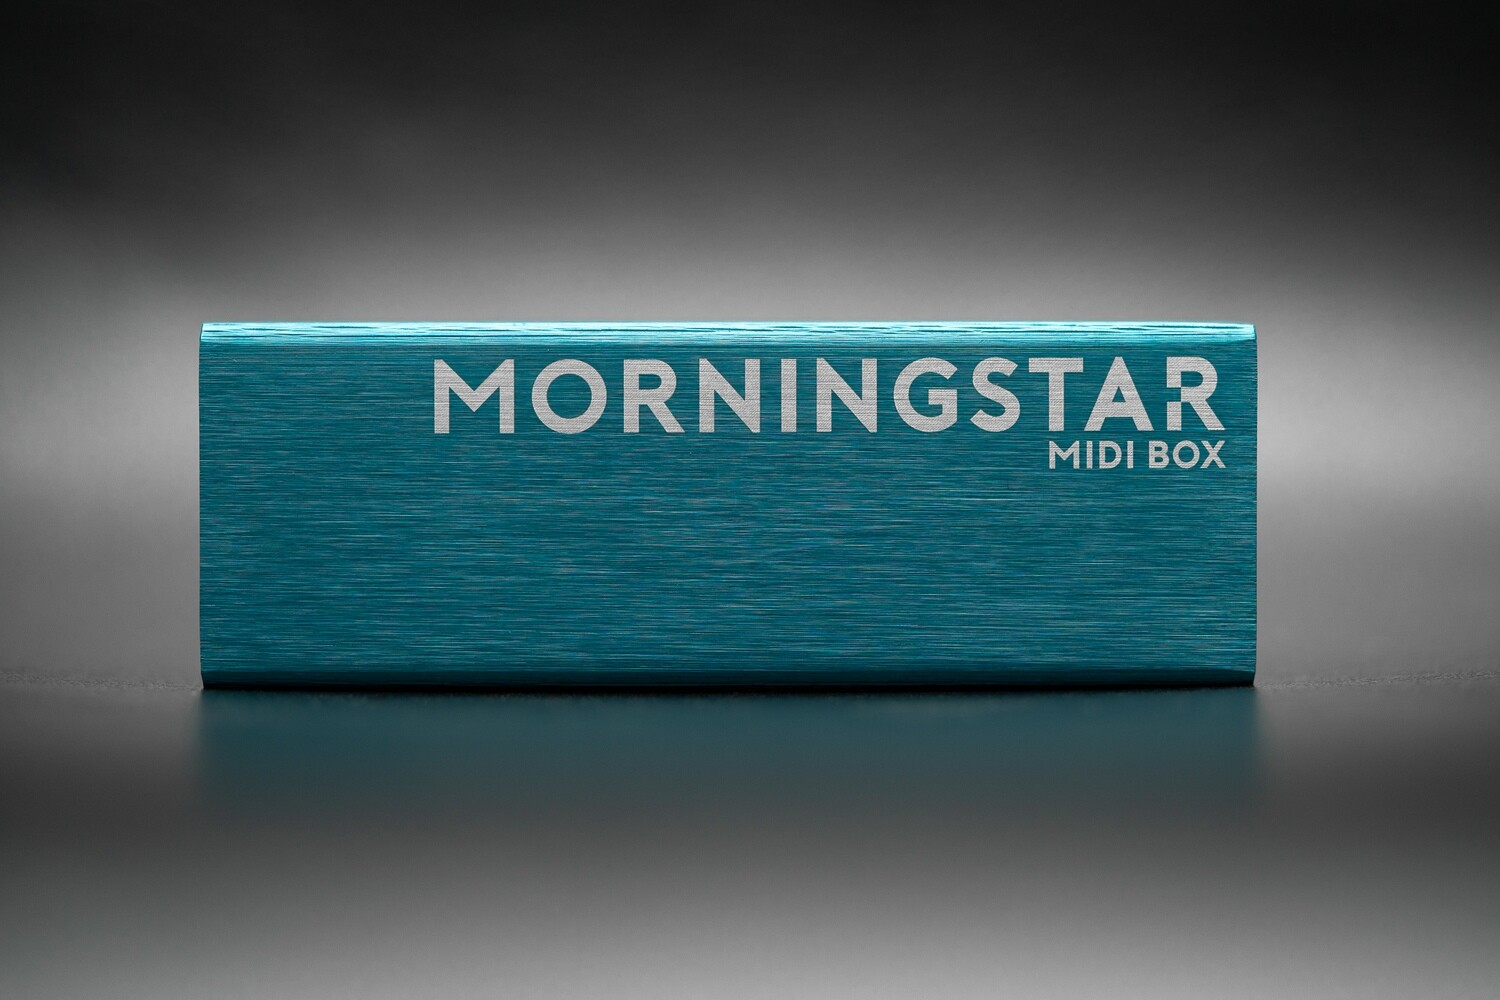 Morningstar Engineering Midibox